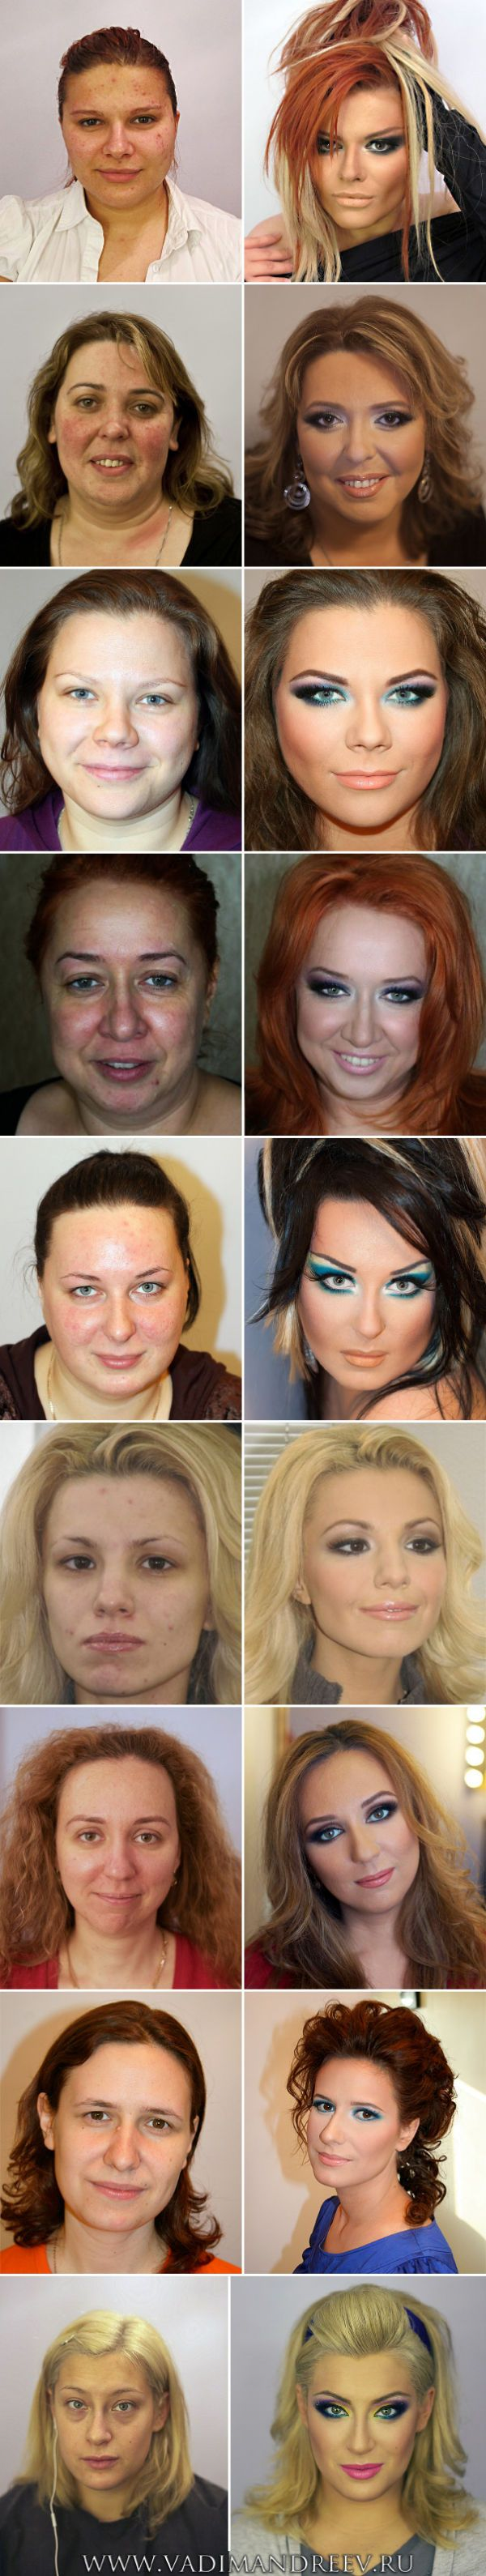 Before and after professional makeup, HOLY CRAP! Makeup can do wonders!!